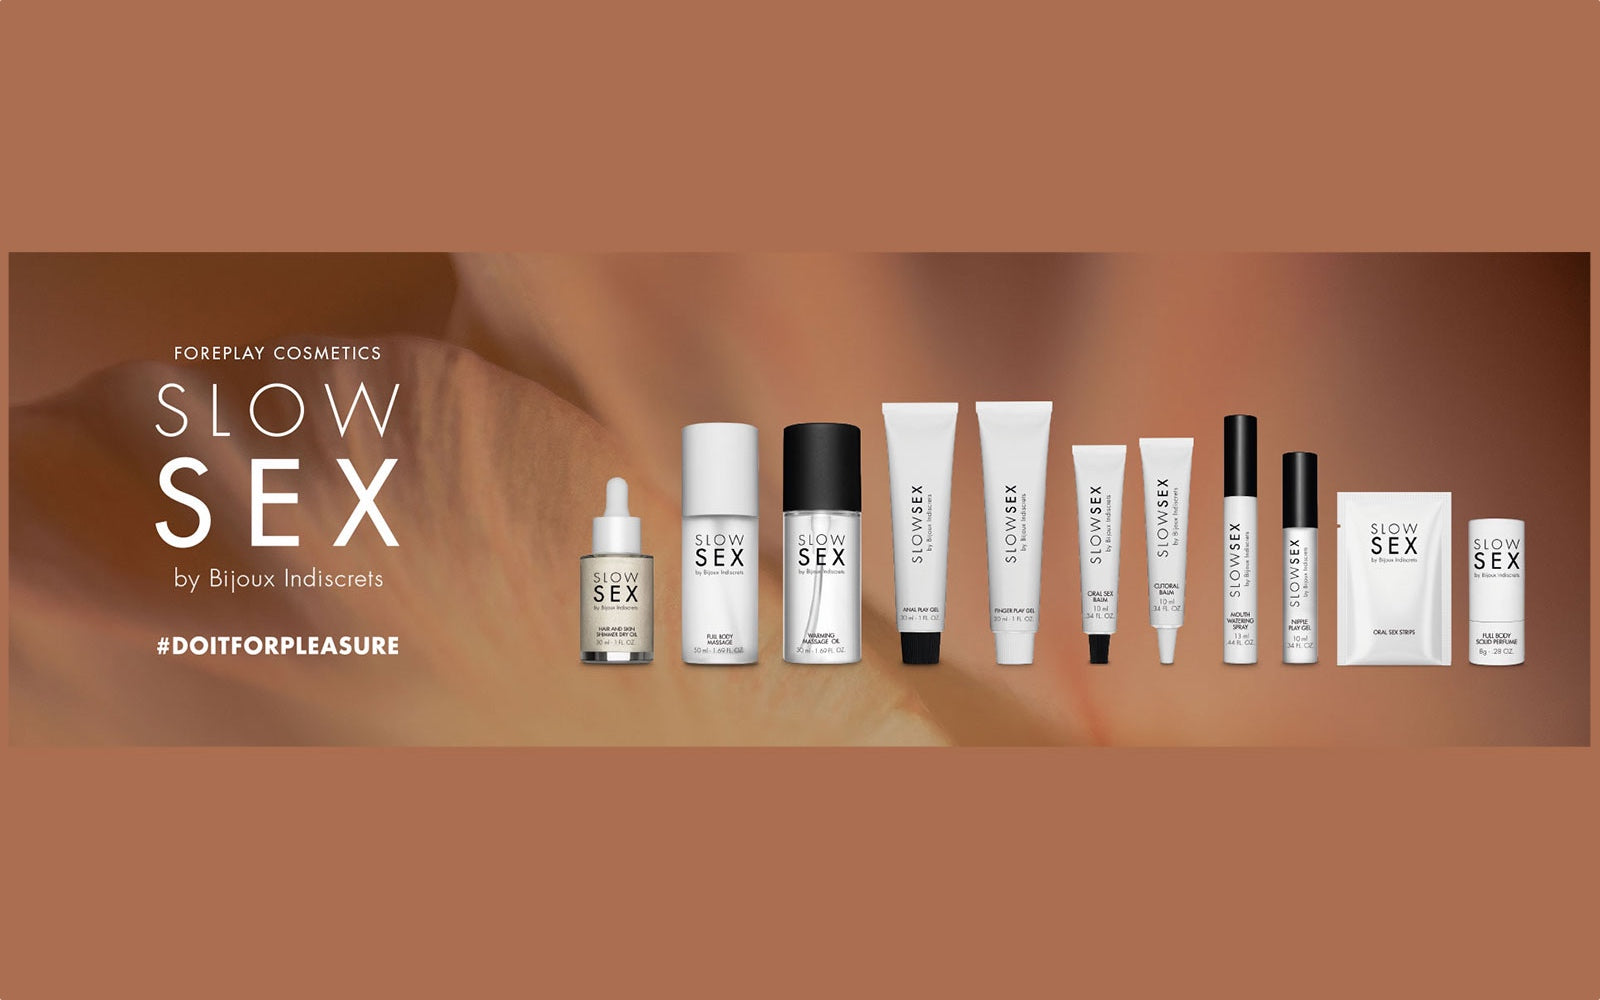 Bijoux Indiscrets Slow Sex Foreplay Cosmetics Line - Rolik®